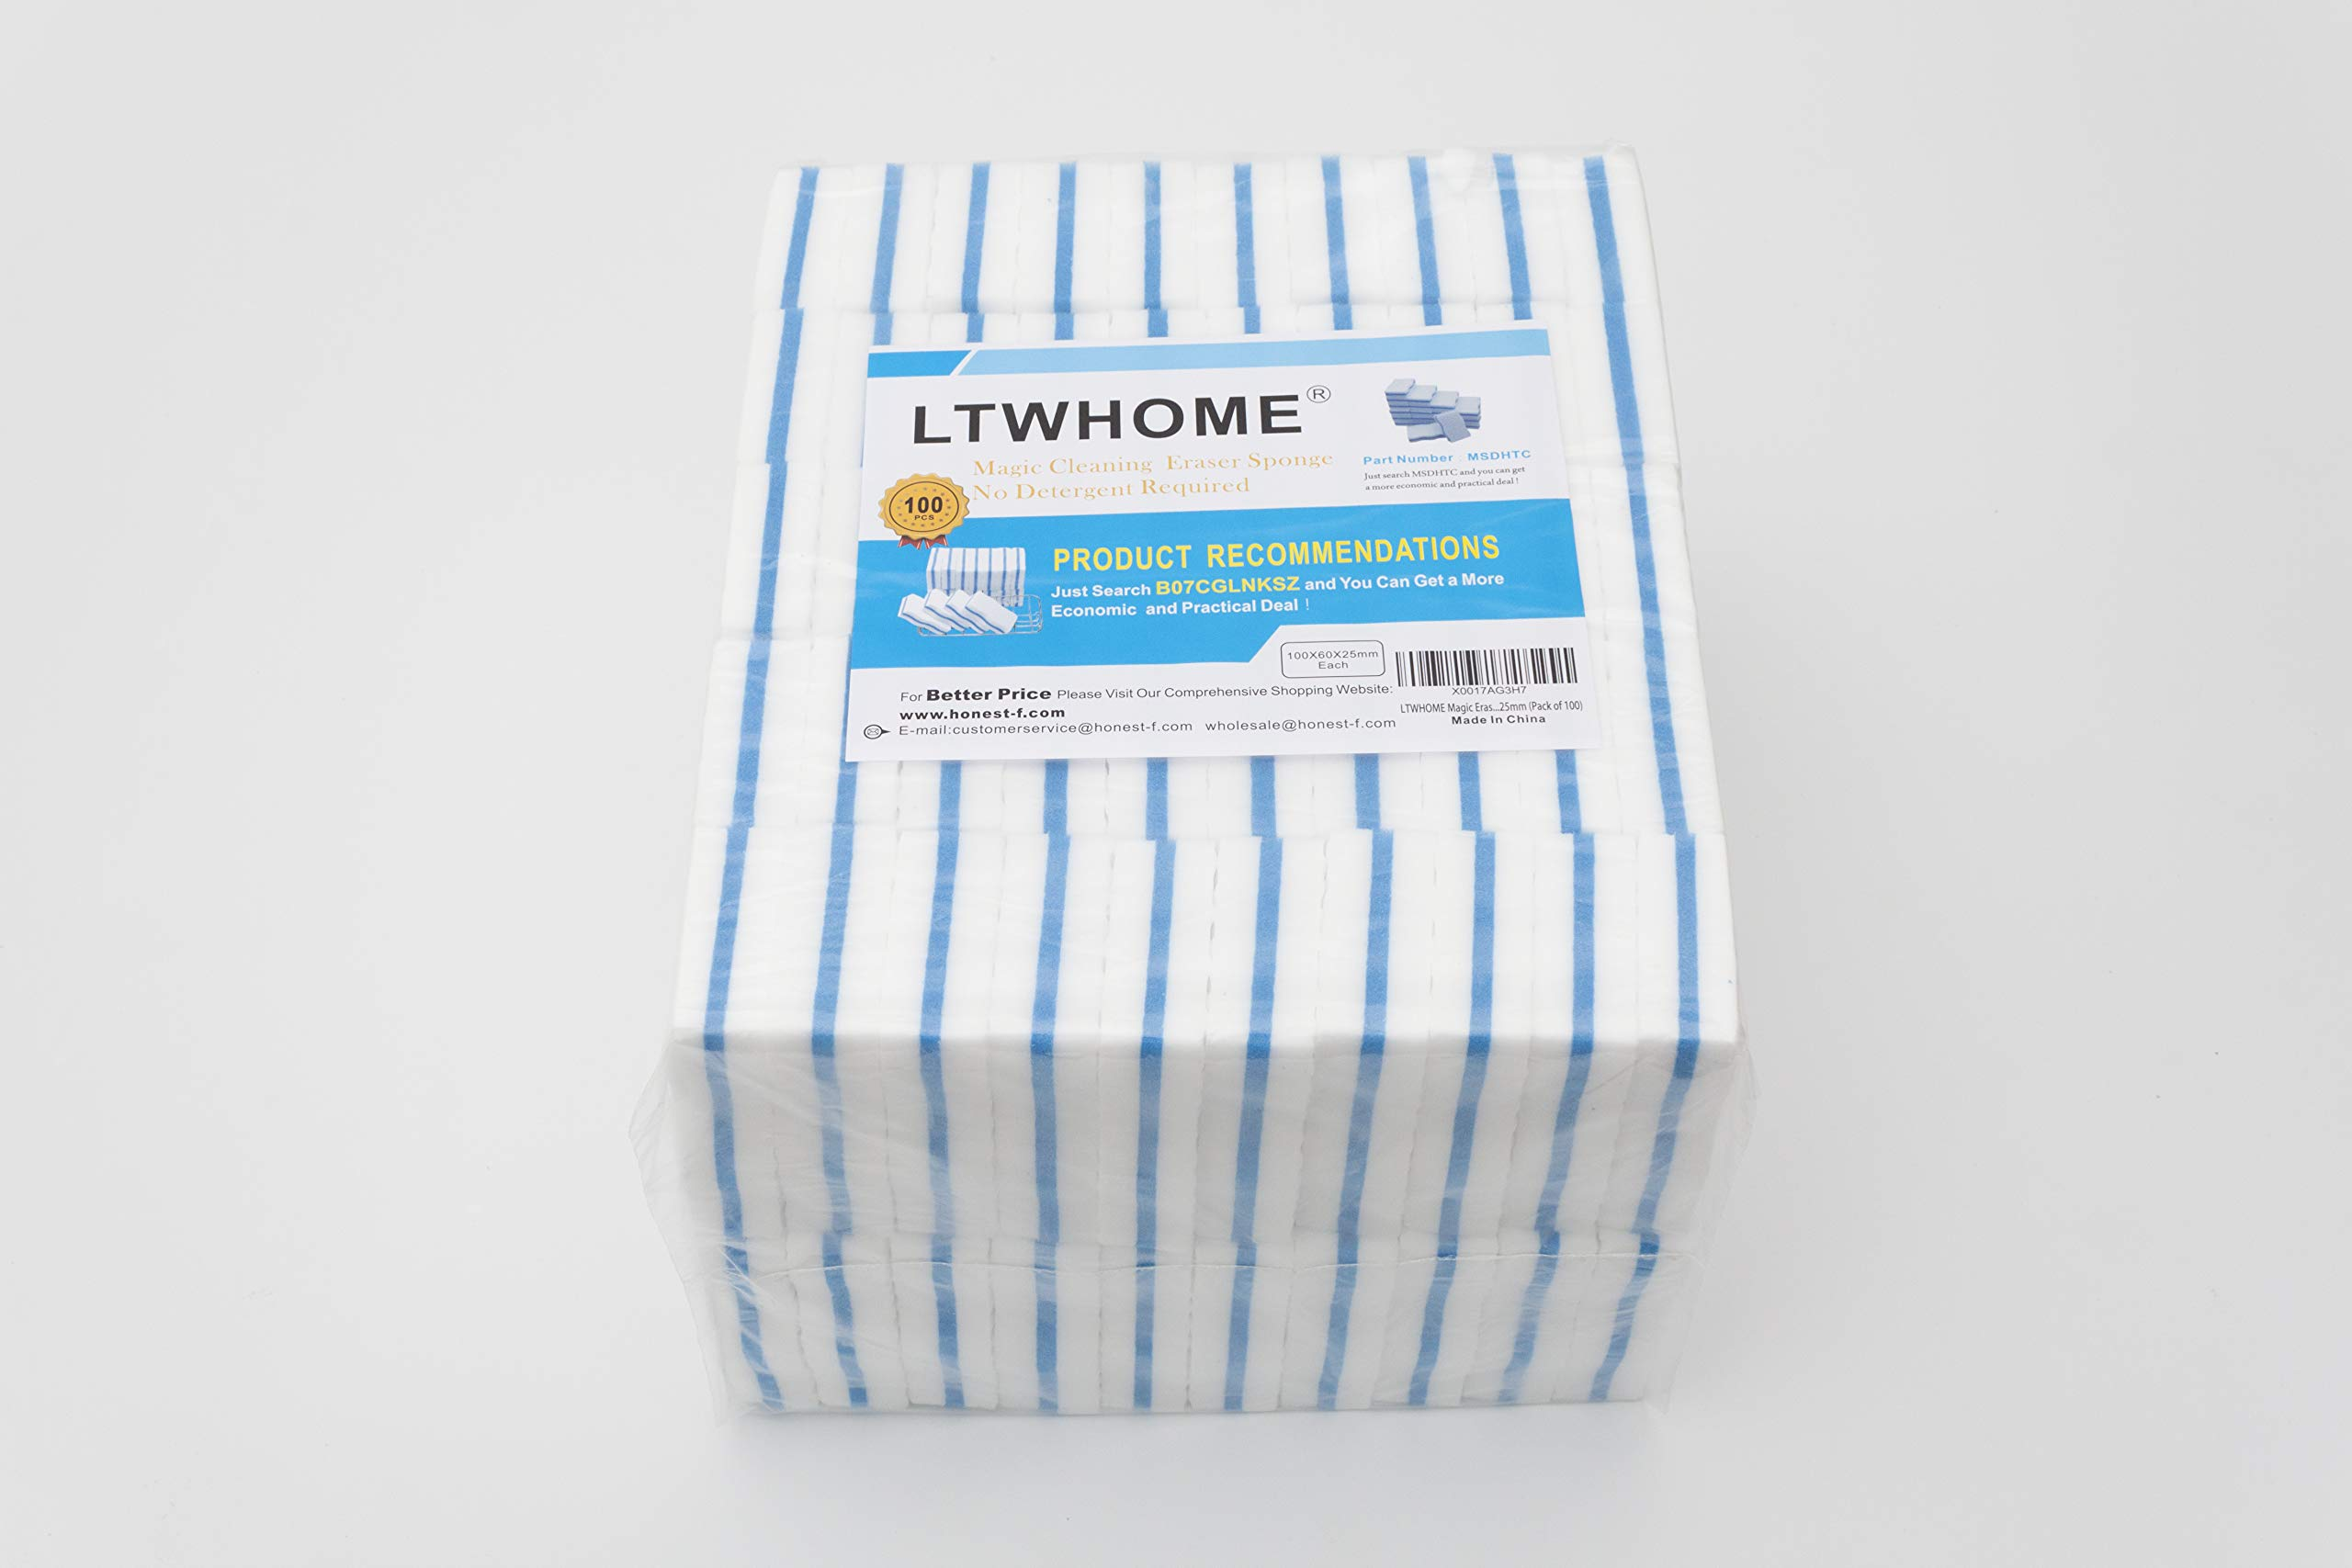 LTWHOME Generic Magic Eraser Kitchen & Dish Scrubber Dual Sided Cleaning Melamine Foam M(4'' x 2.4'' x 1'') (Pack of 100) by LTWHOME (Image #1)